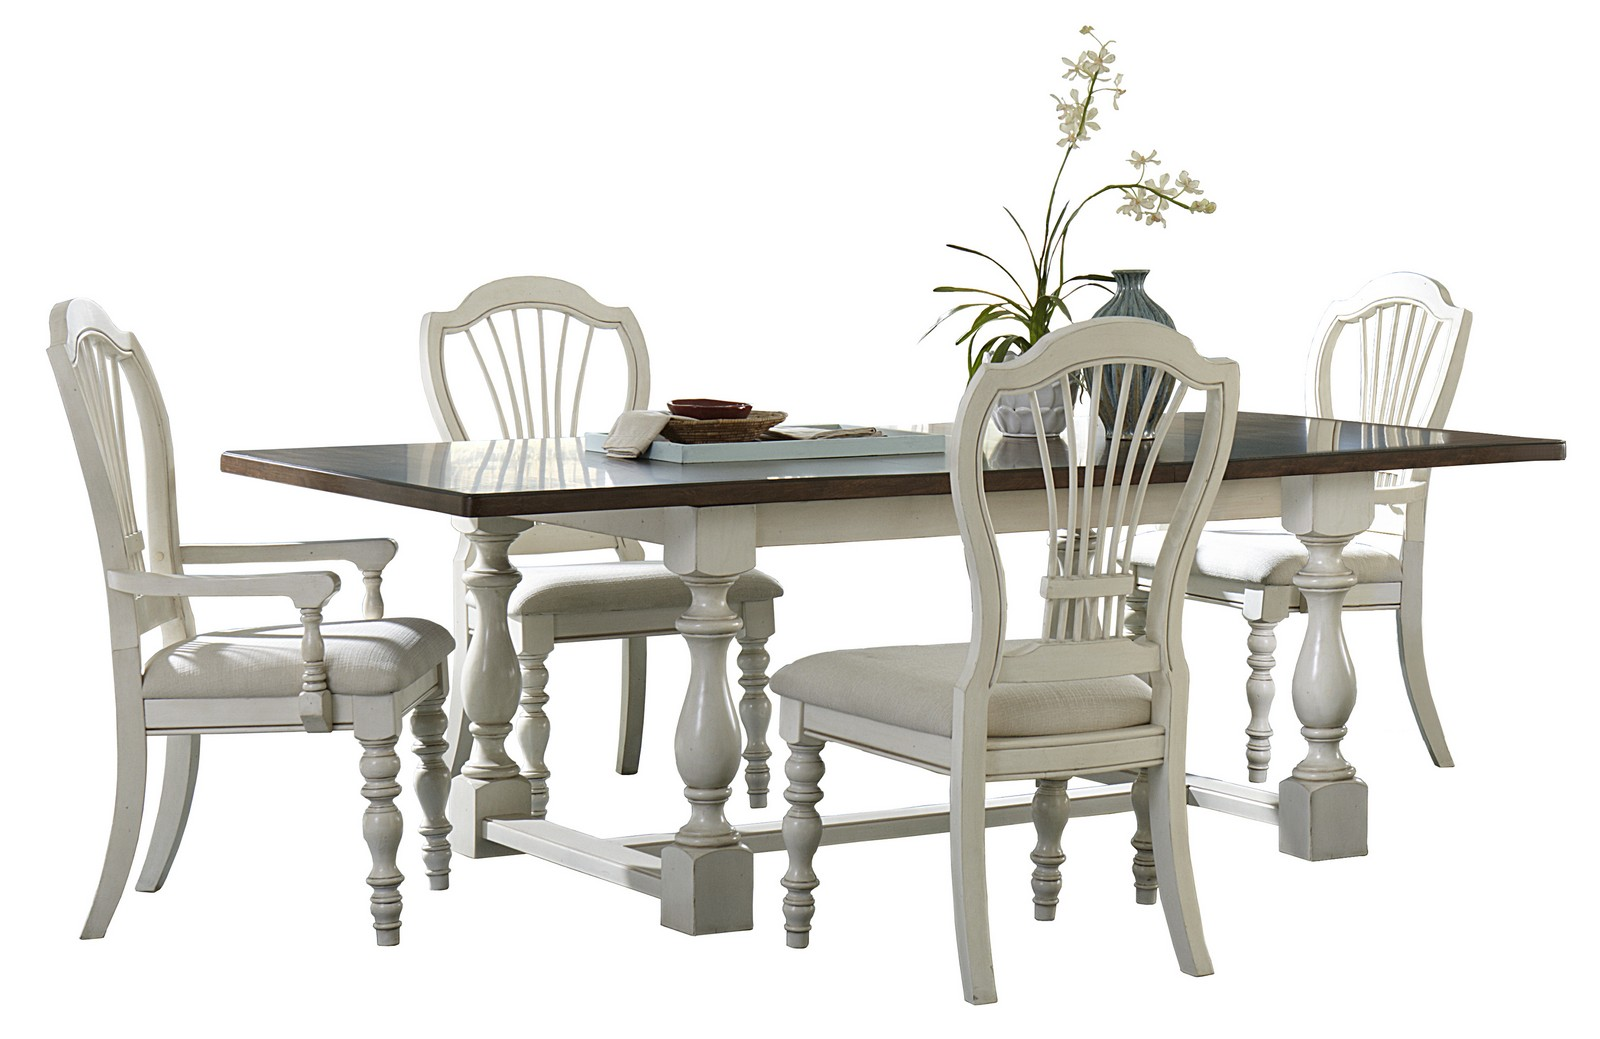 Hillsdale Pine Island 5 PC Trestle Dining Set with Wheat Back Chairs - Old White